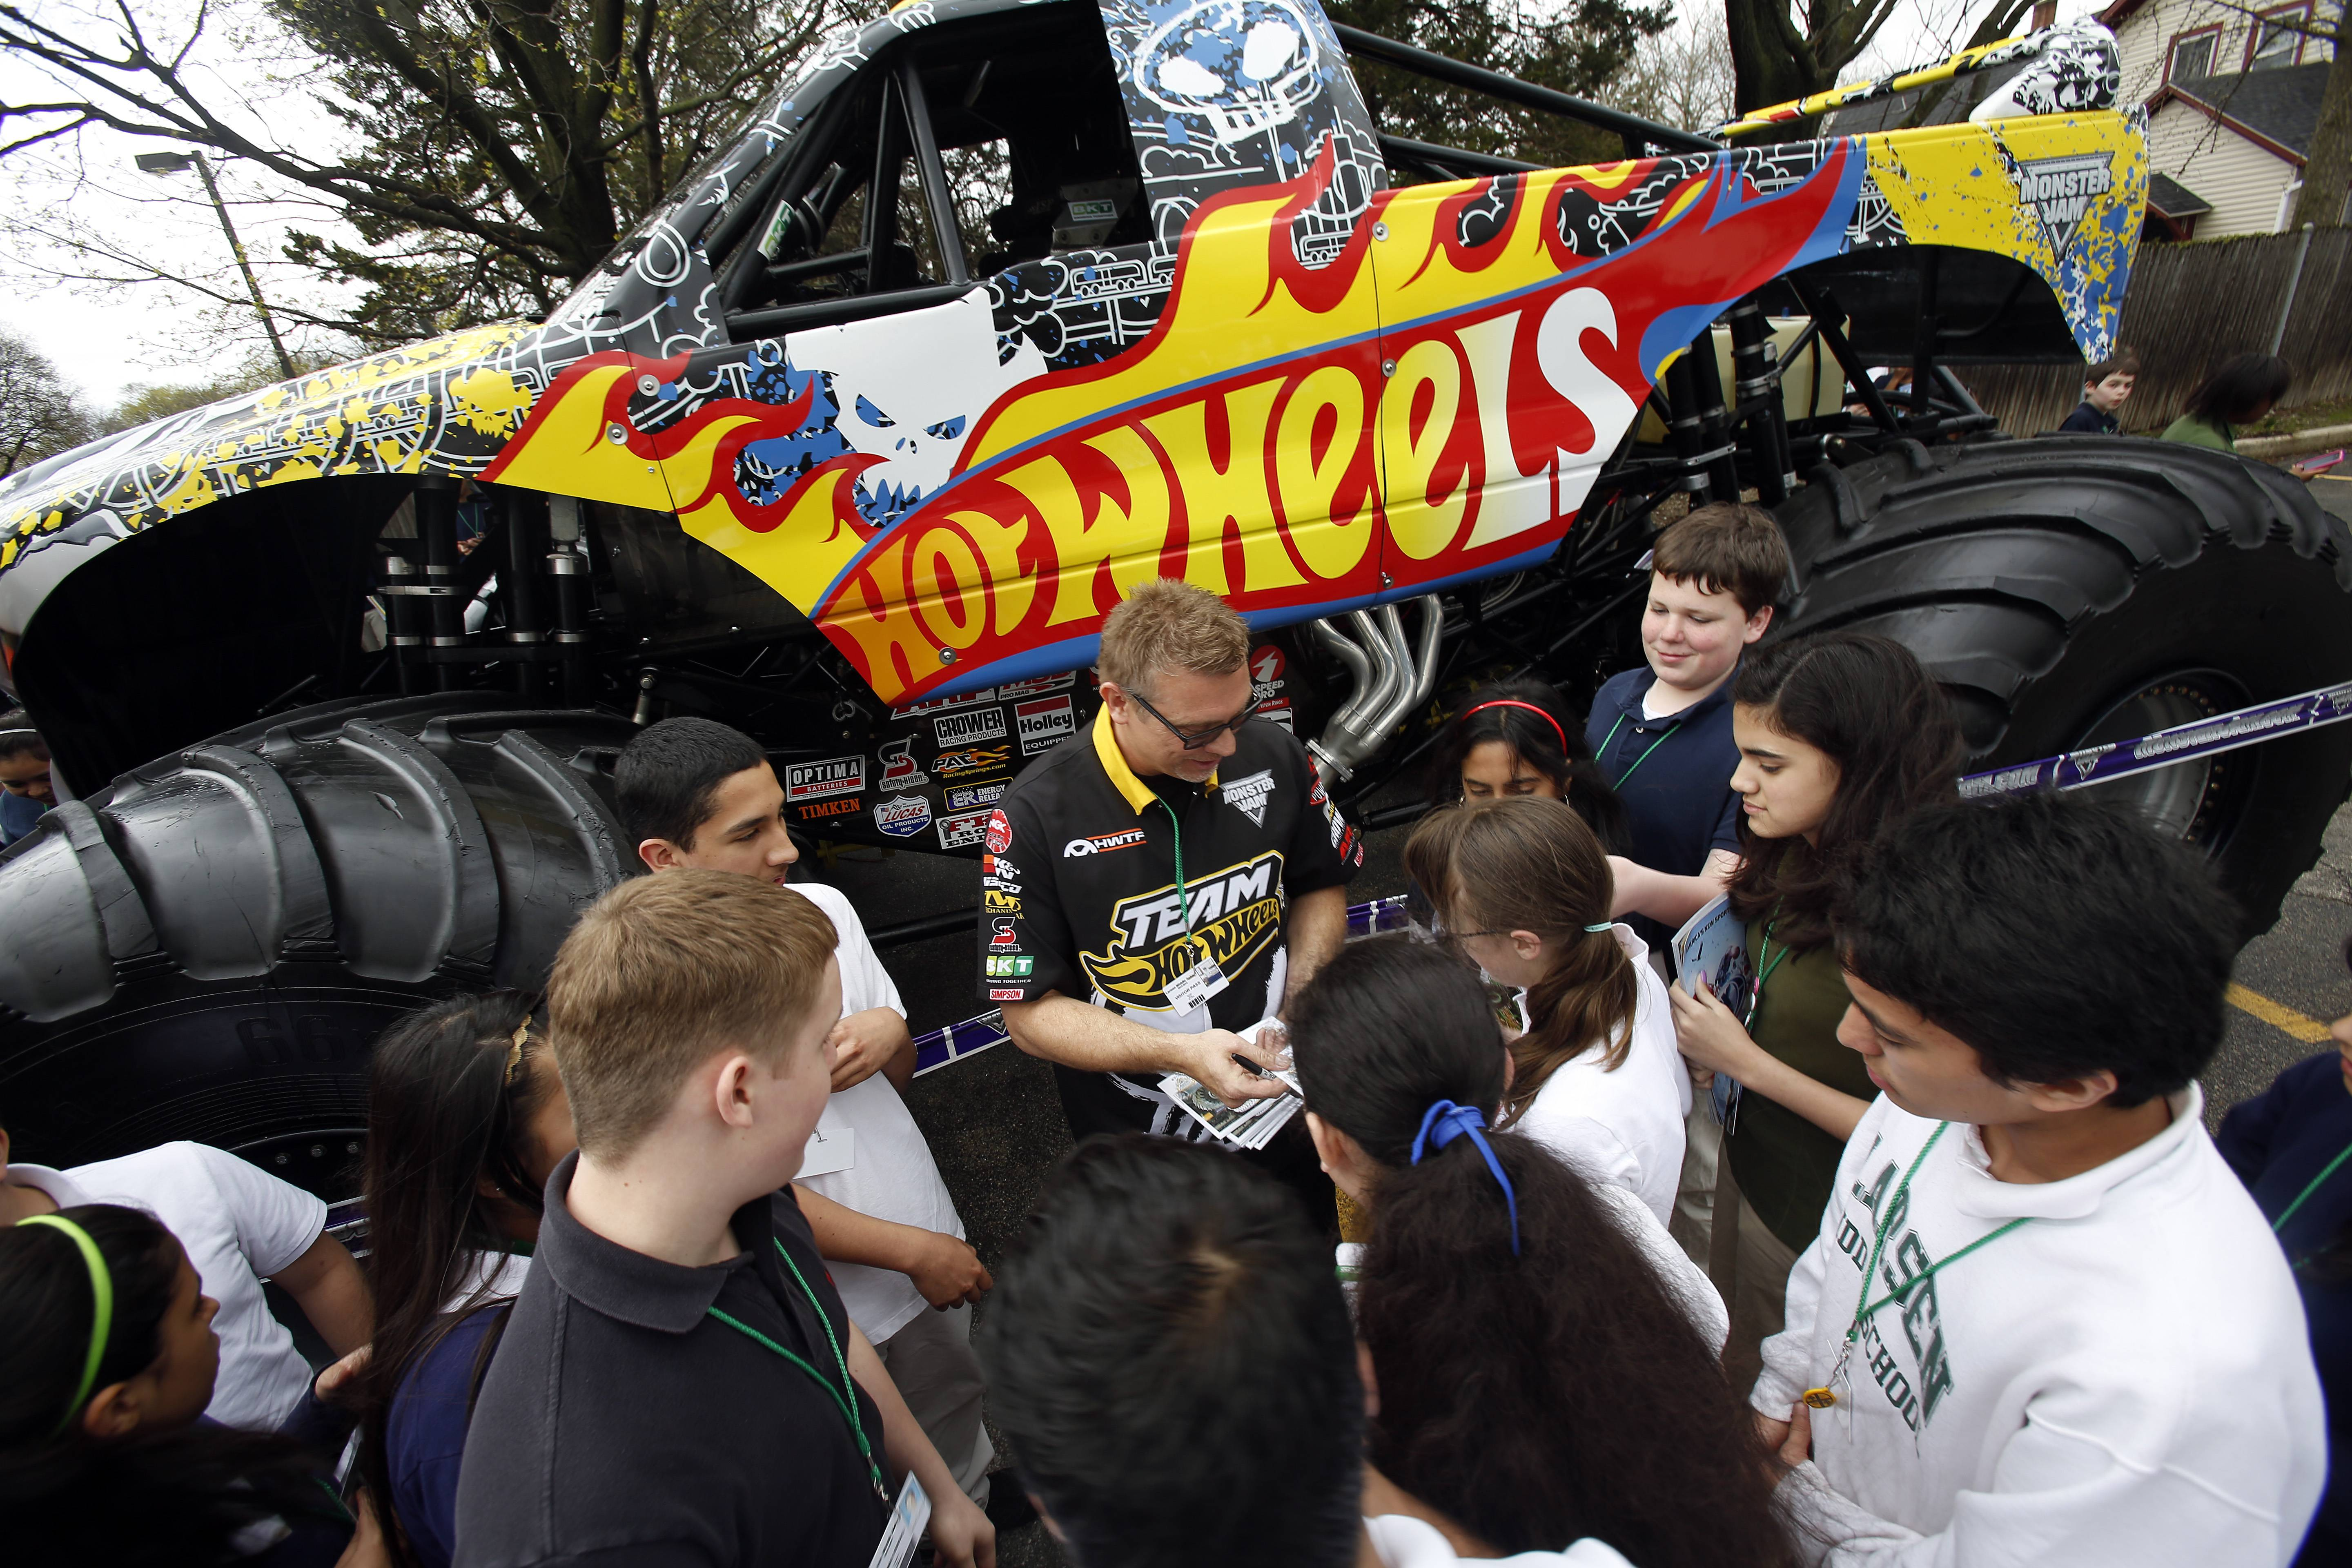 Larsen Middle School alumnus Scott Buetow, a driver for the Hot Wheels team on the Monster Jam circuit, signs autographs for students Tuesday at the Elgin school.